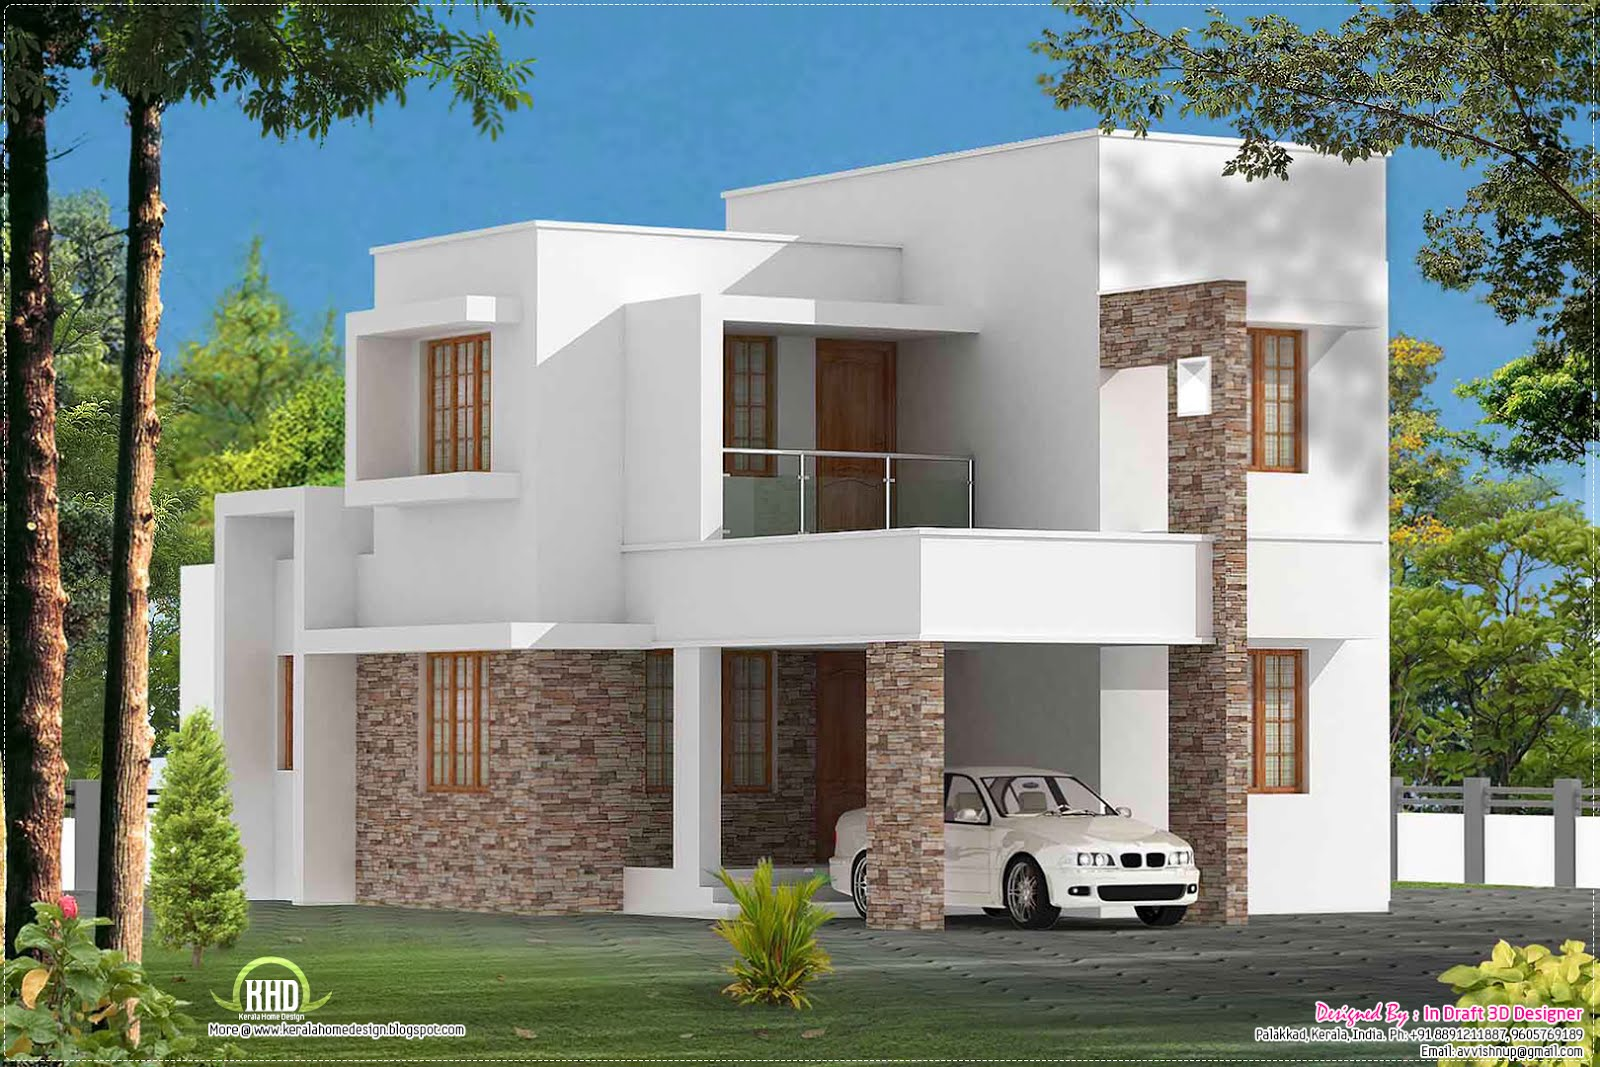 Simple 3 bed room contemporary villa house design plans for Contemporary villa plans